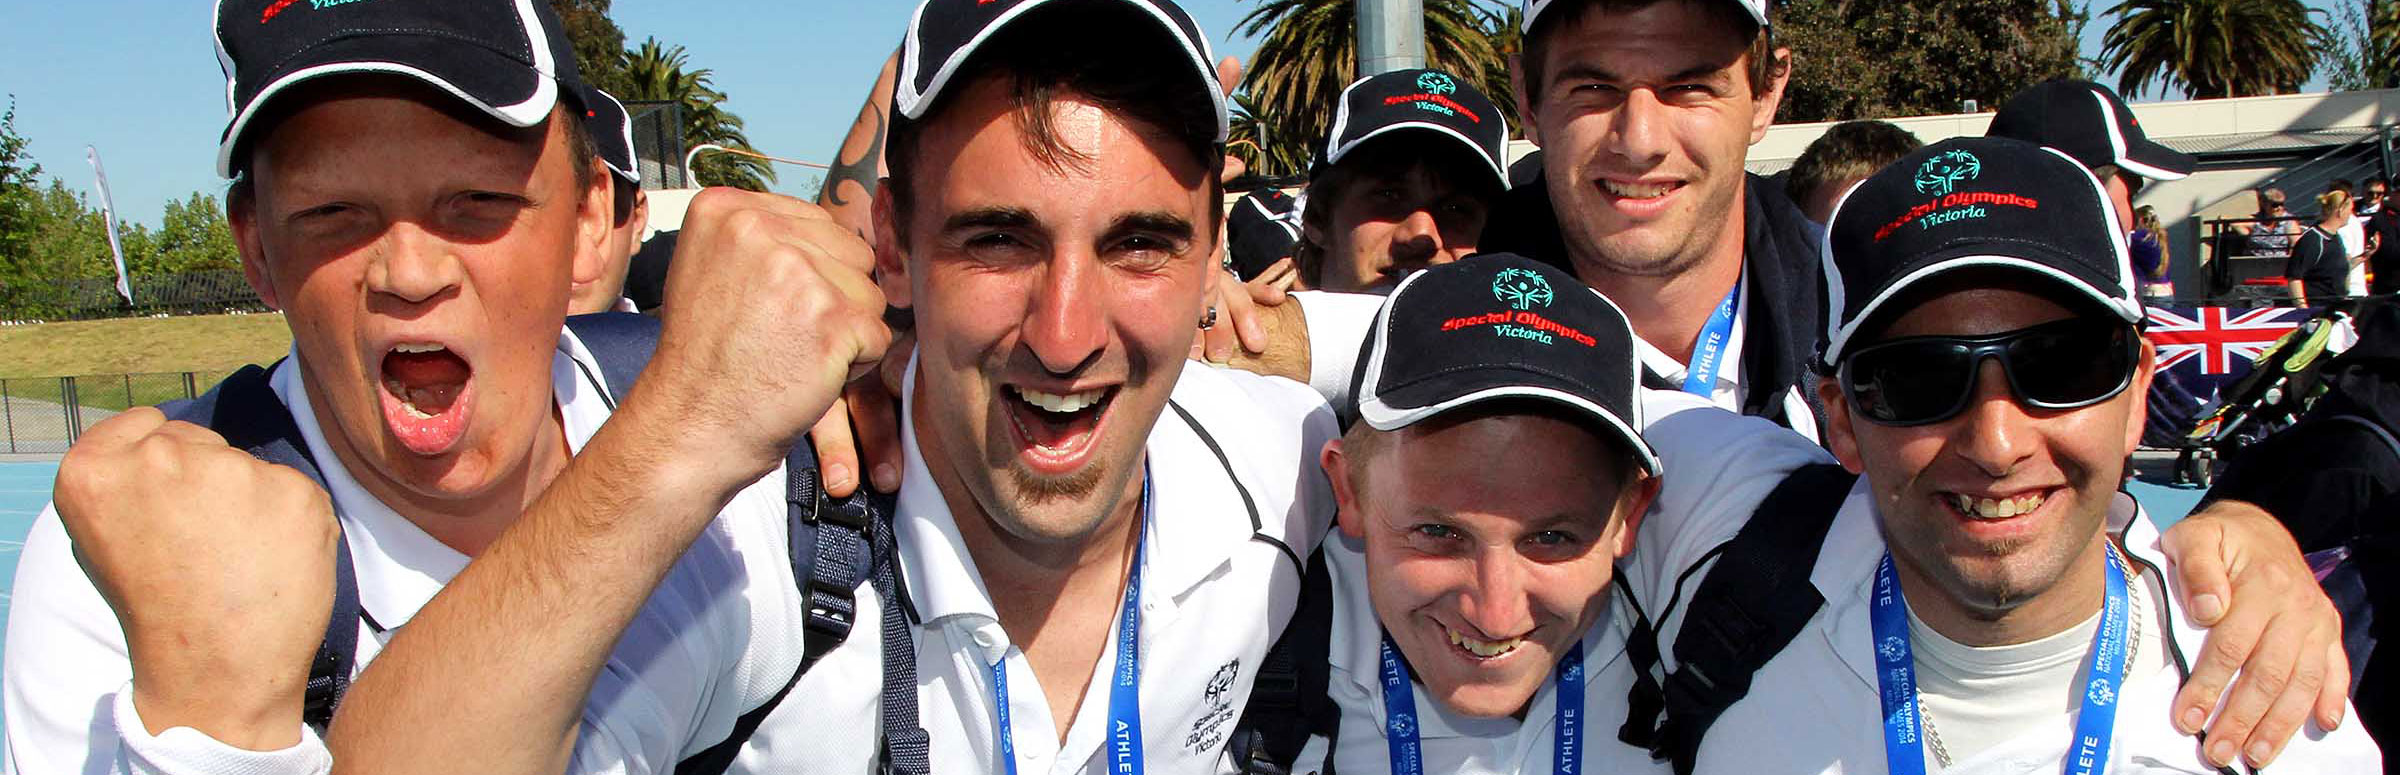 Special Olympics Australia National Games Adelaide 16